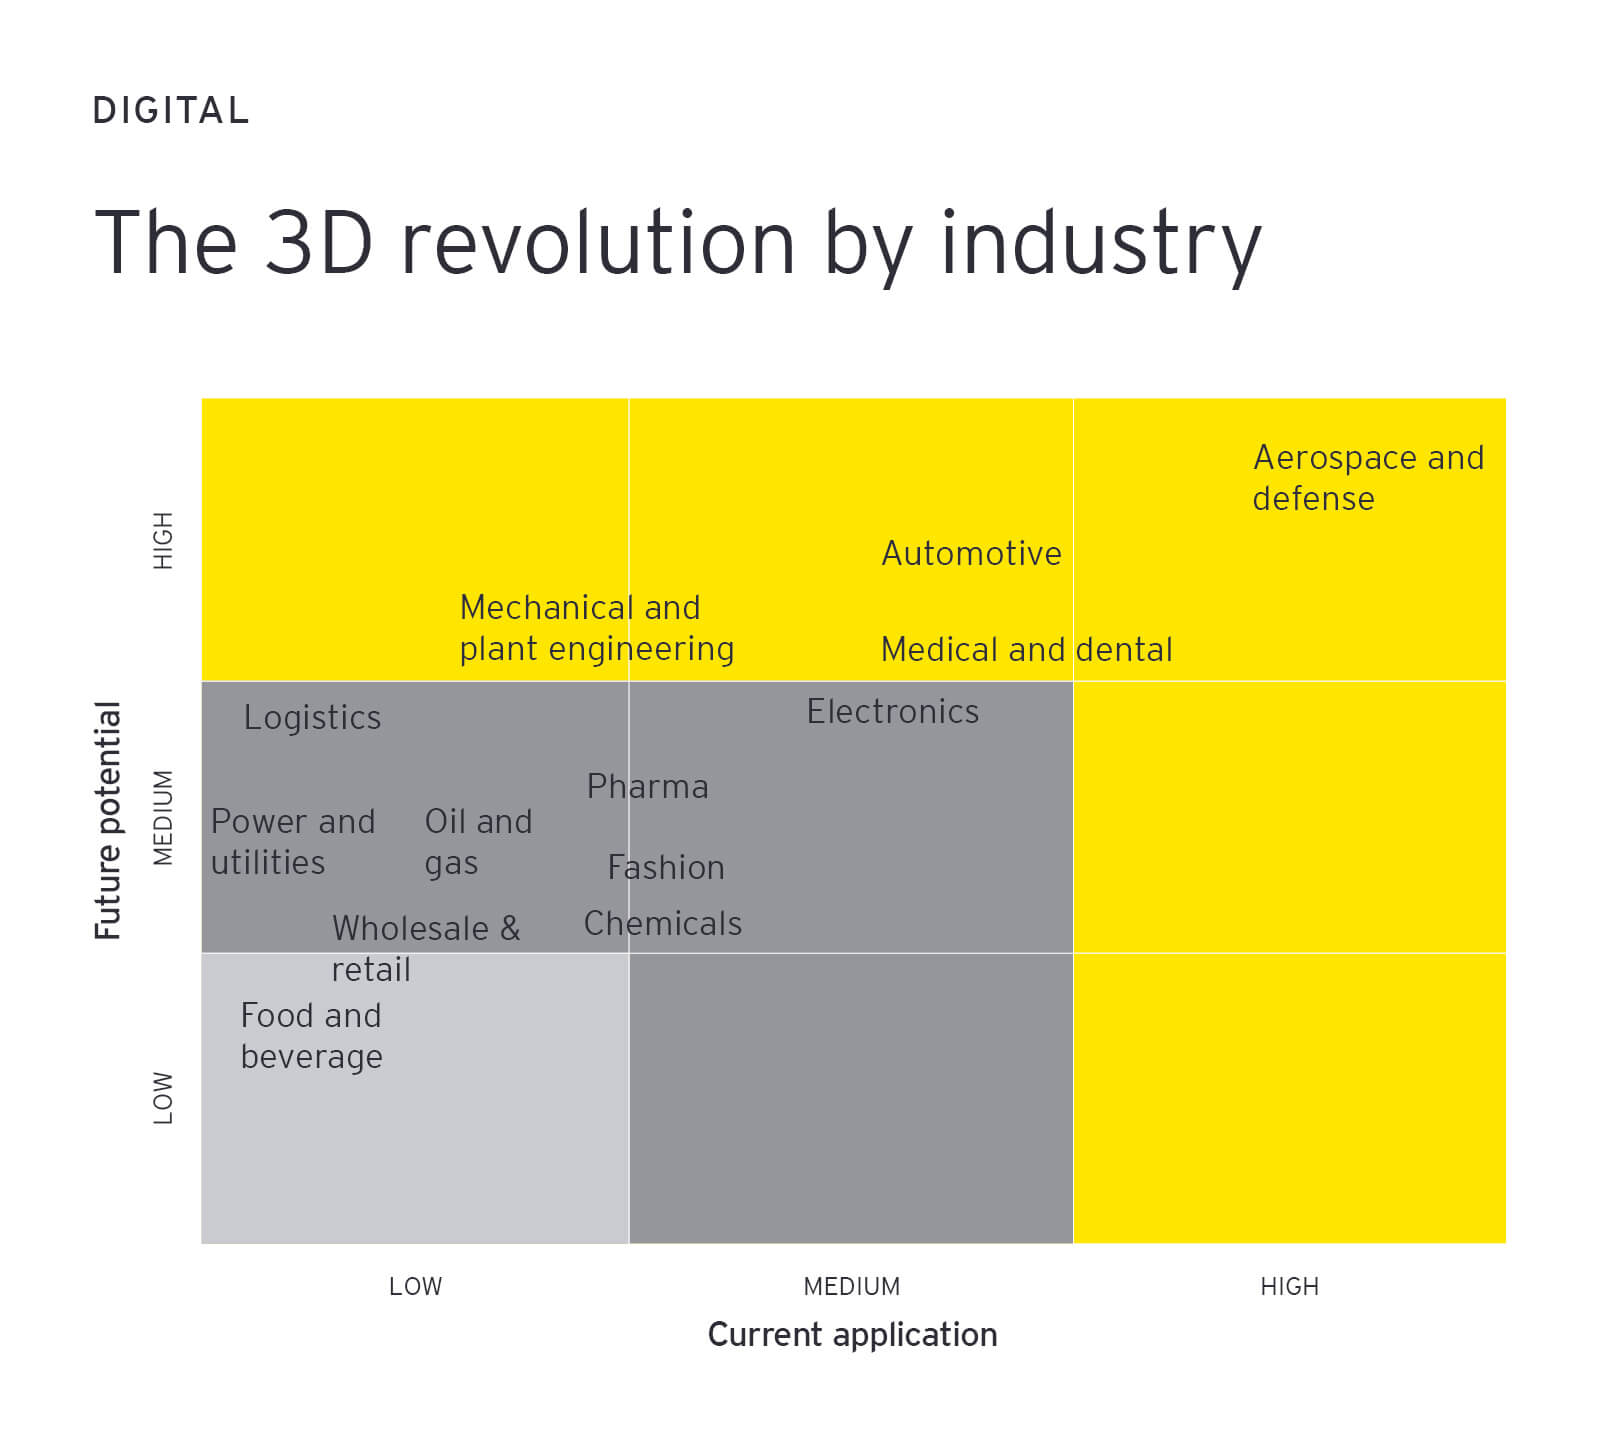 3D revolution by industry